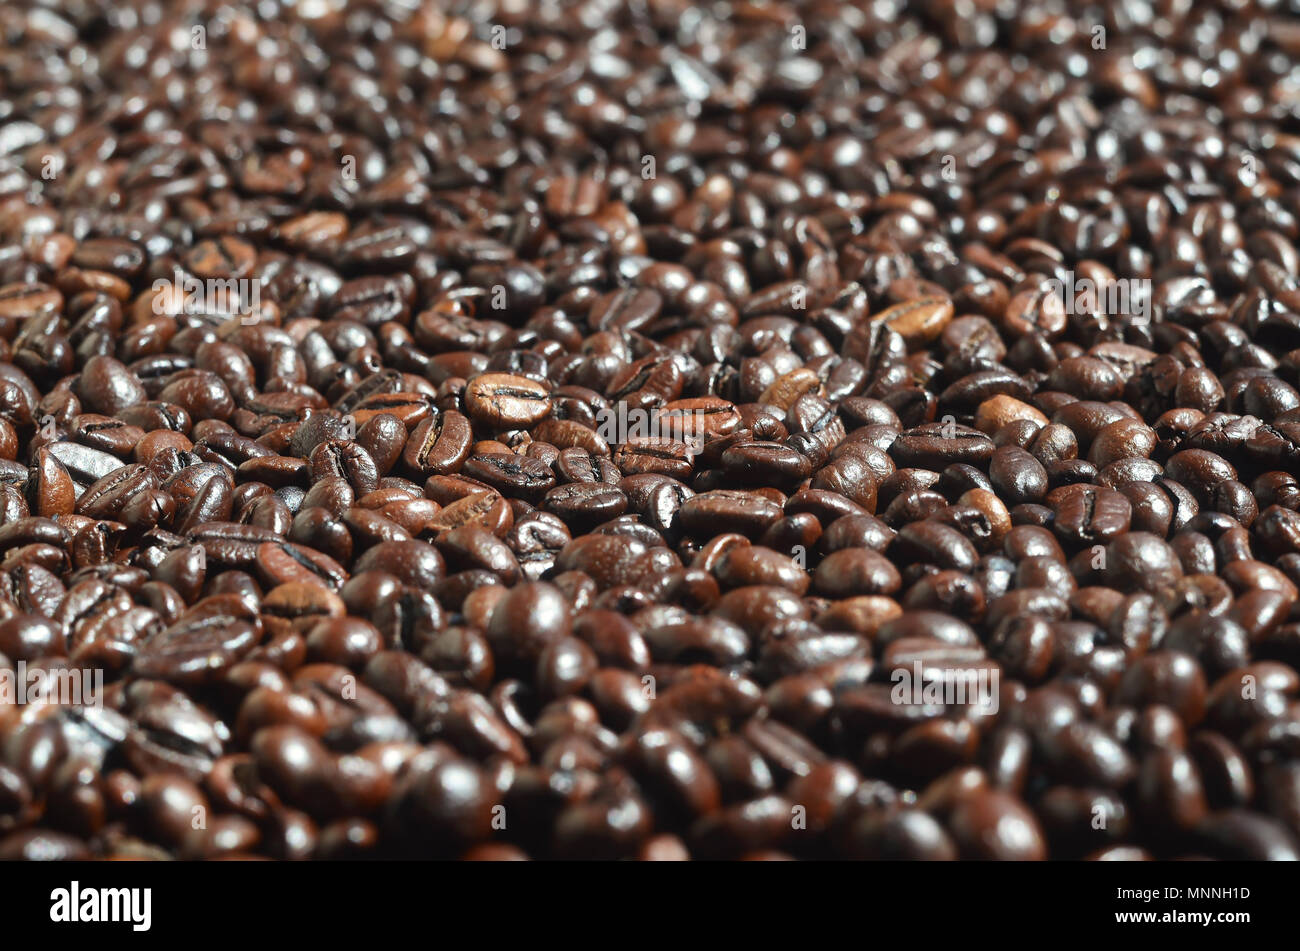 Background pattern from a huge number of fragrant and fresh roasted brown coffee beans. Many grains of coffee crop close-up in warm tones - Stock Image